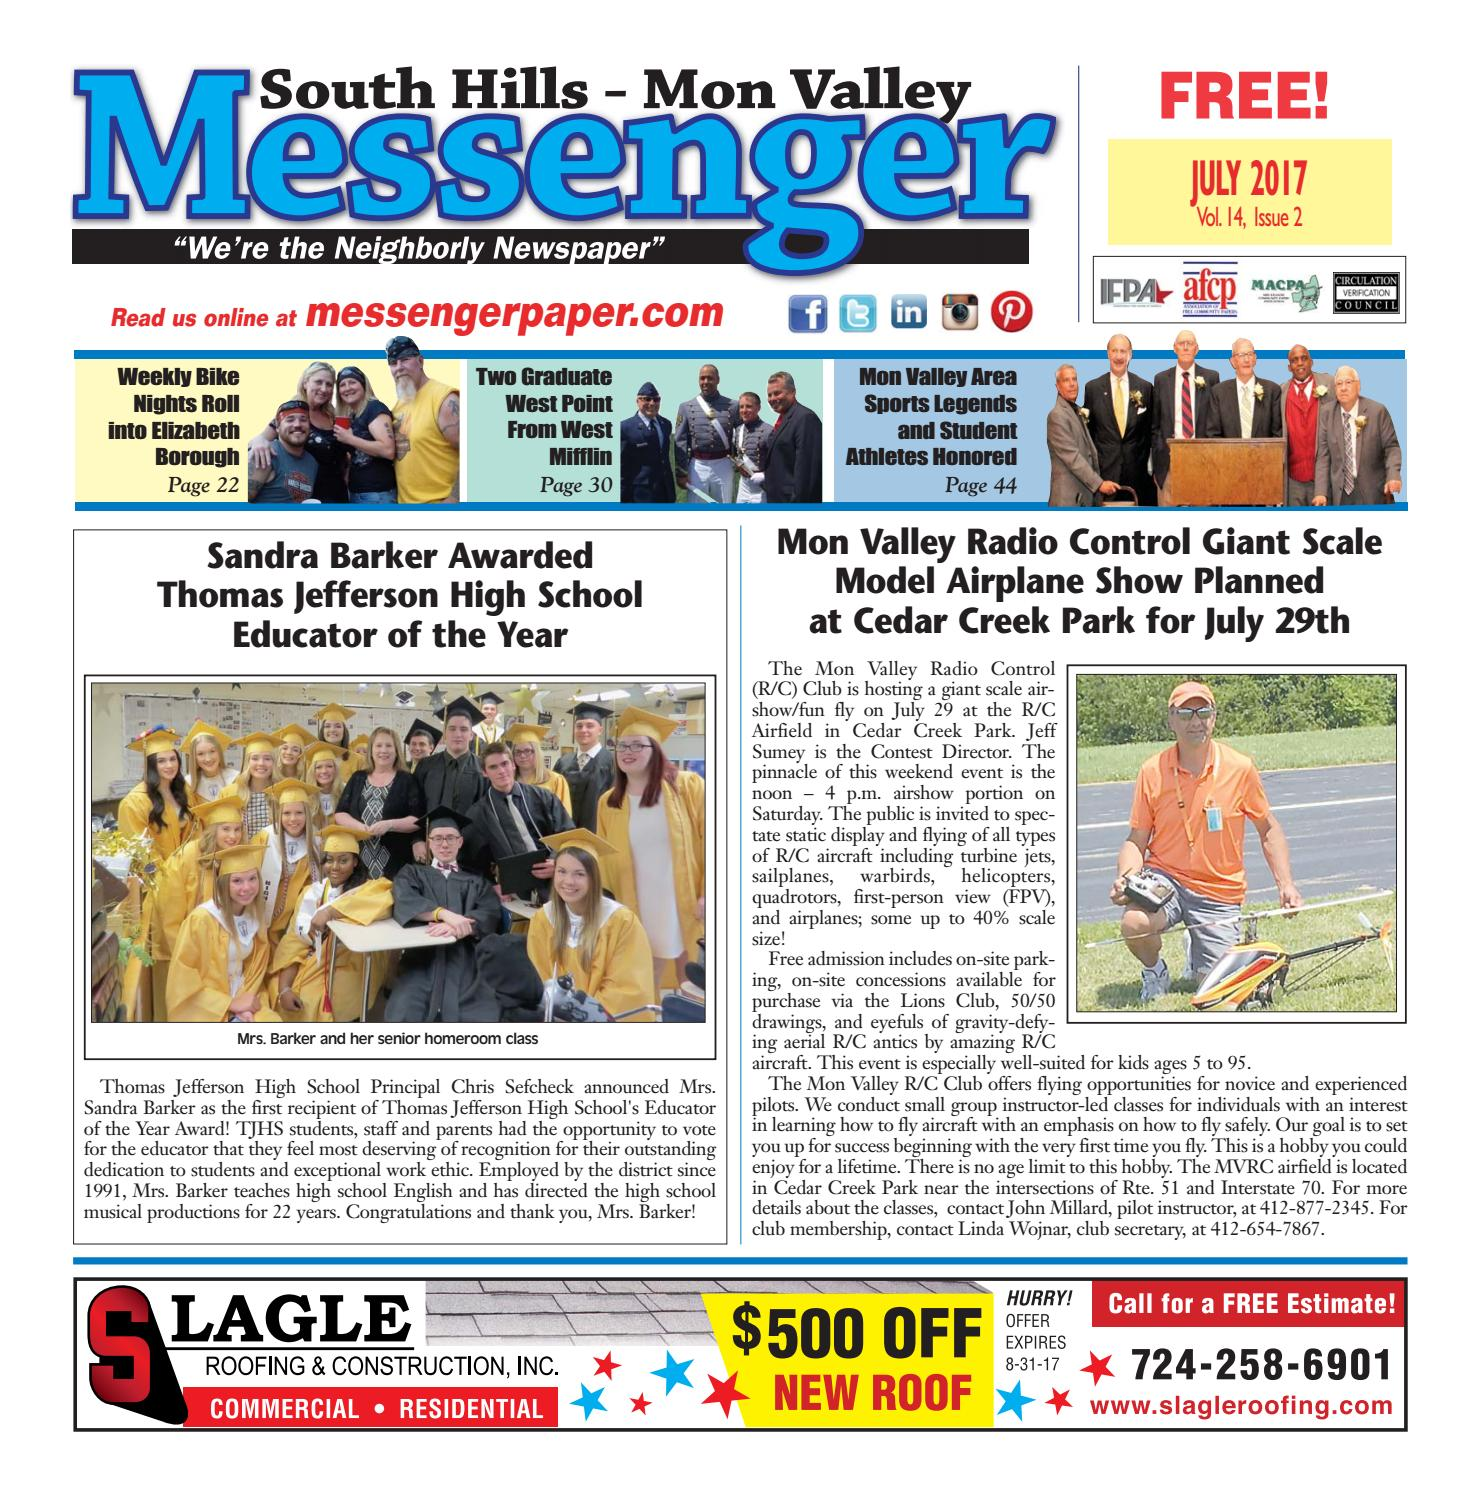 South Hills Mon Valley Messenger July 2017 by South Hills